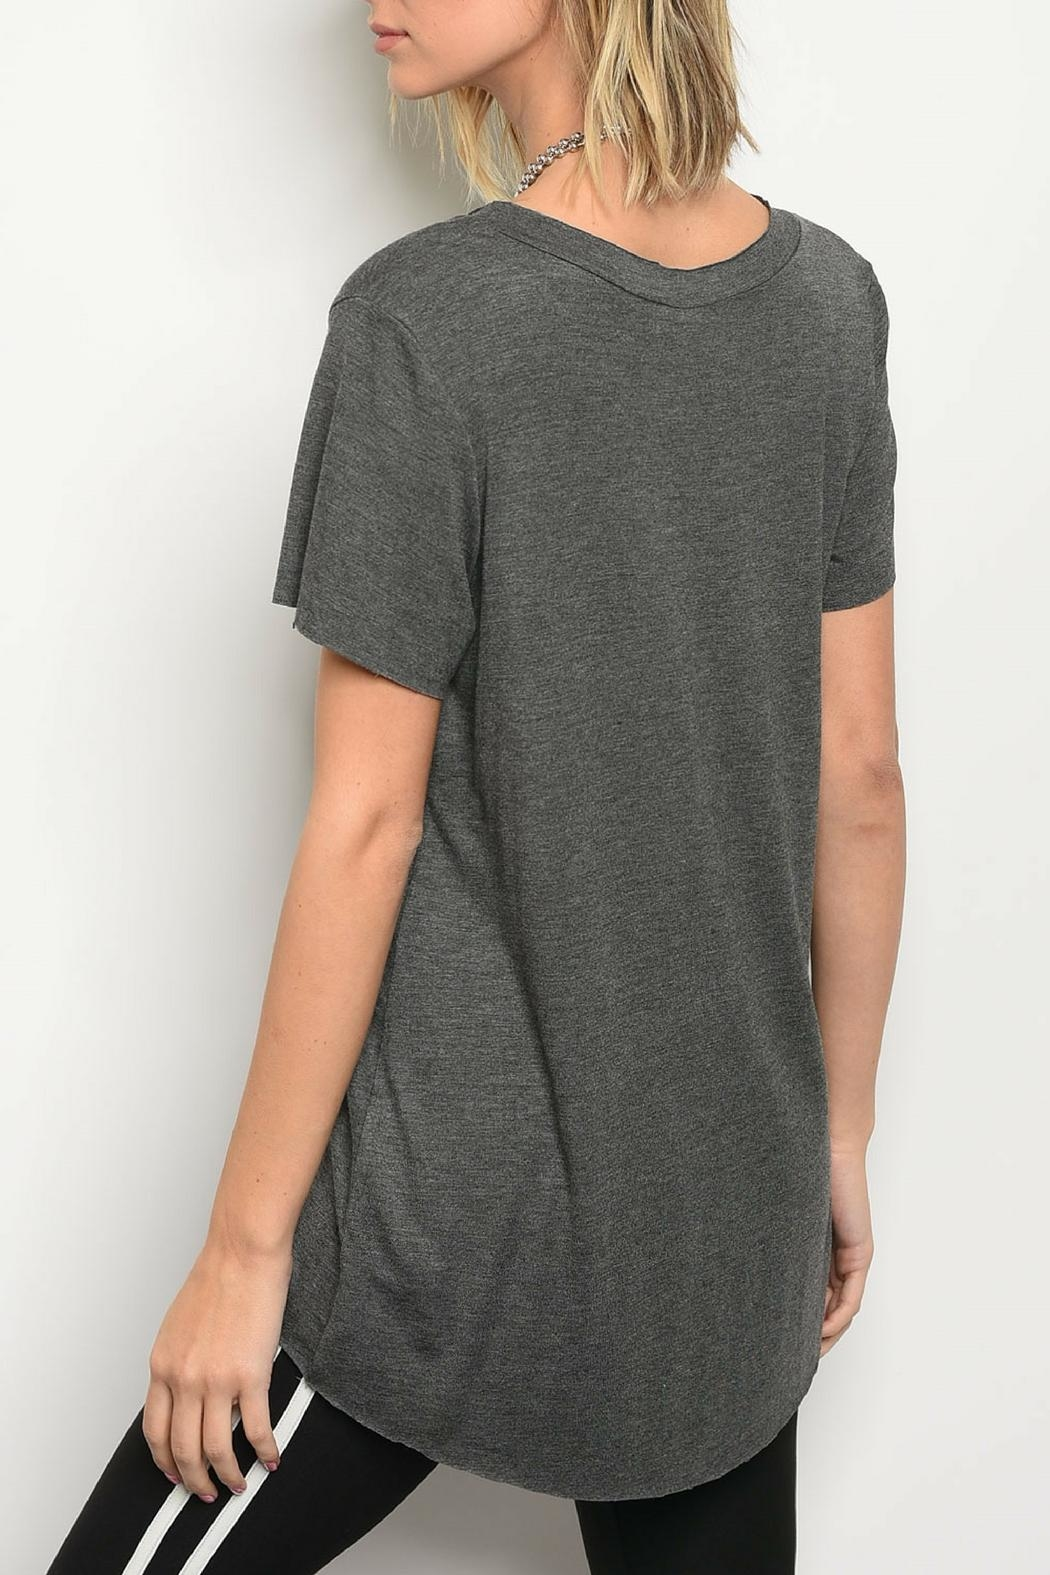 Honey Punch Charcoal Jersey Tee - Front Full Image